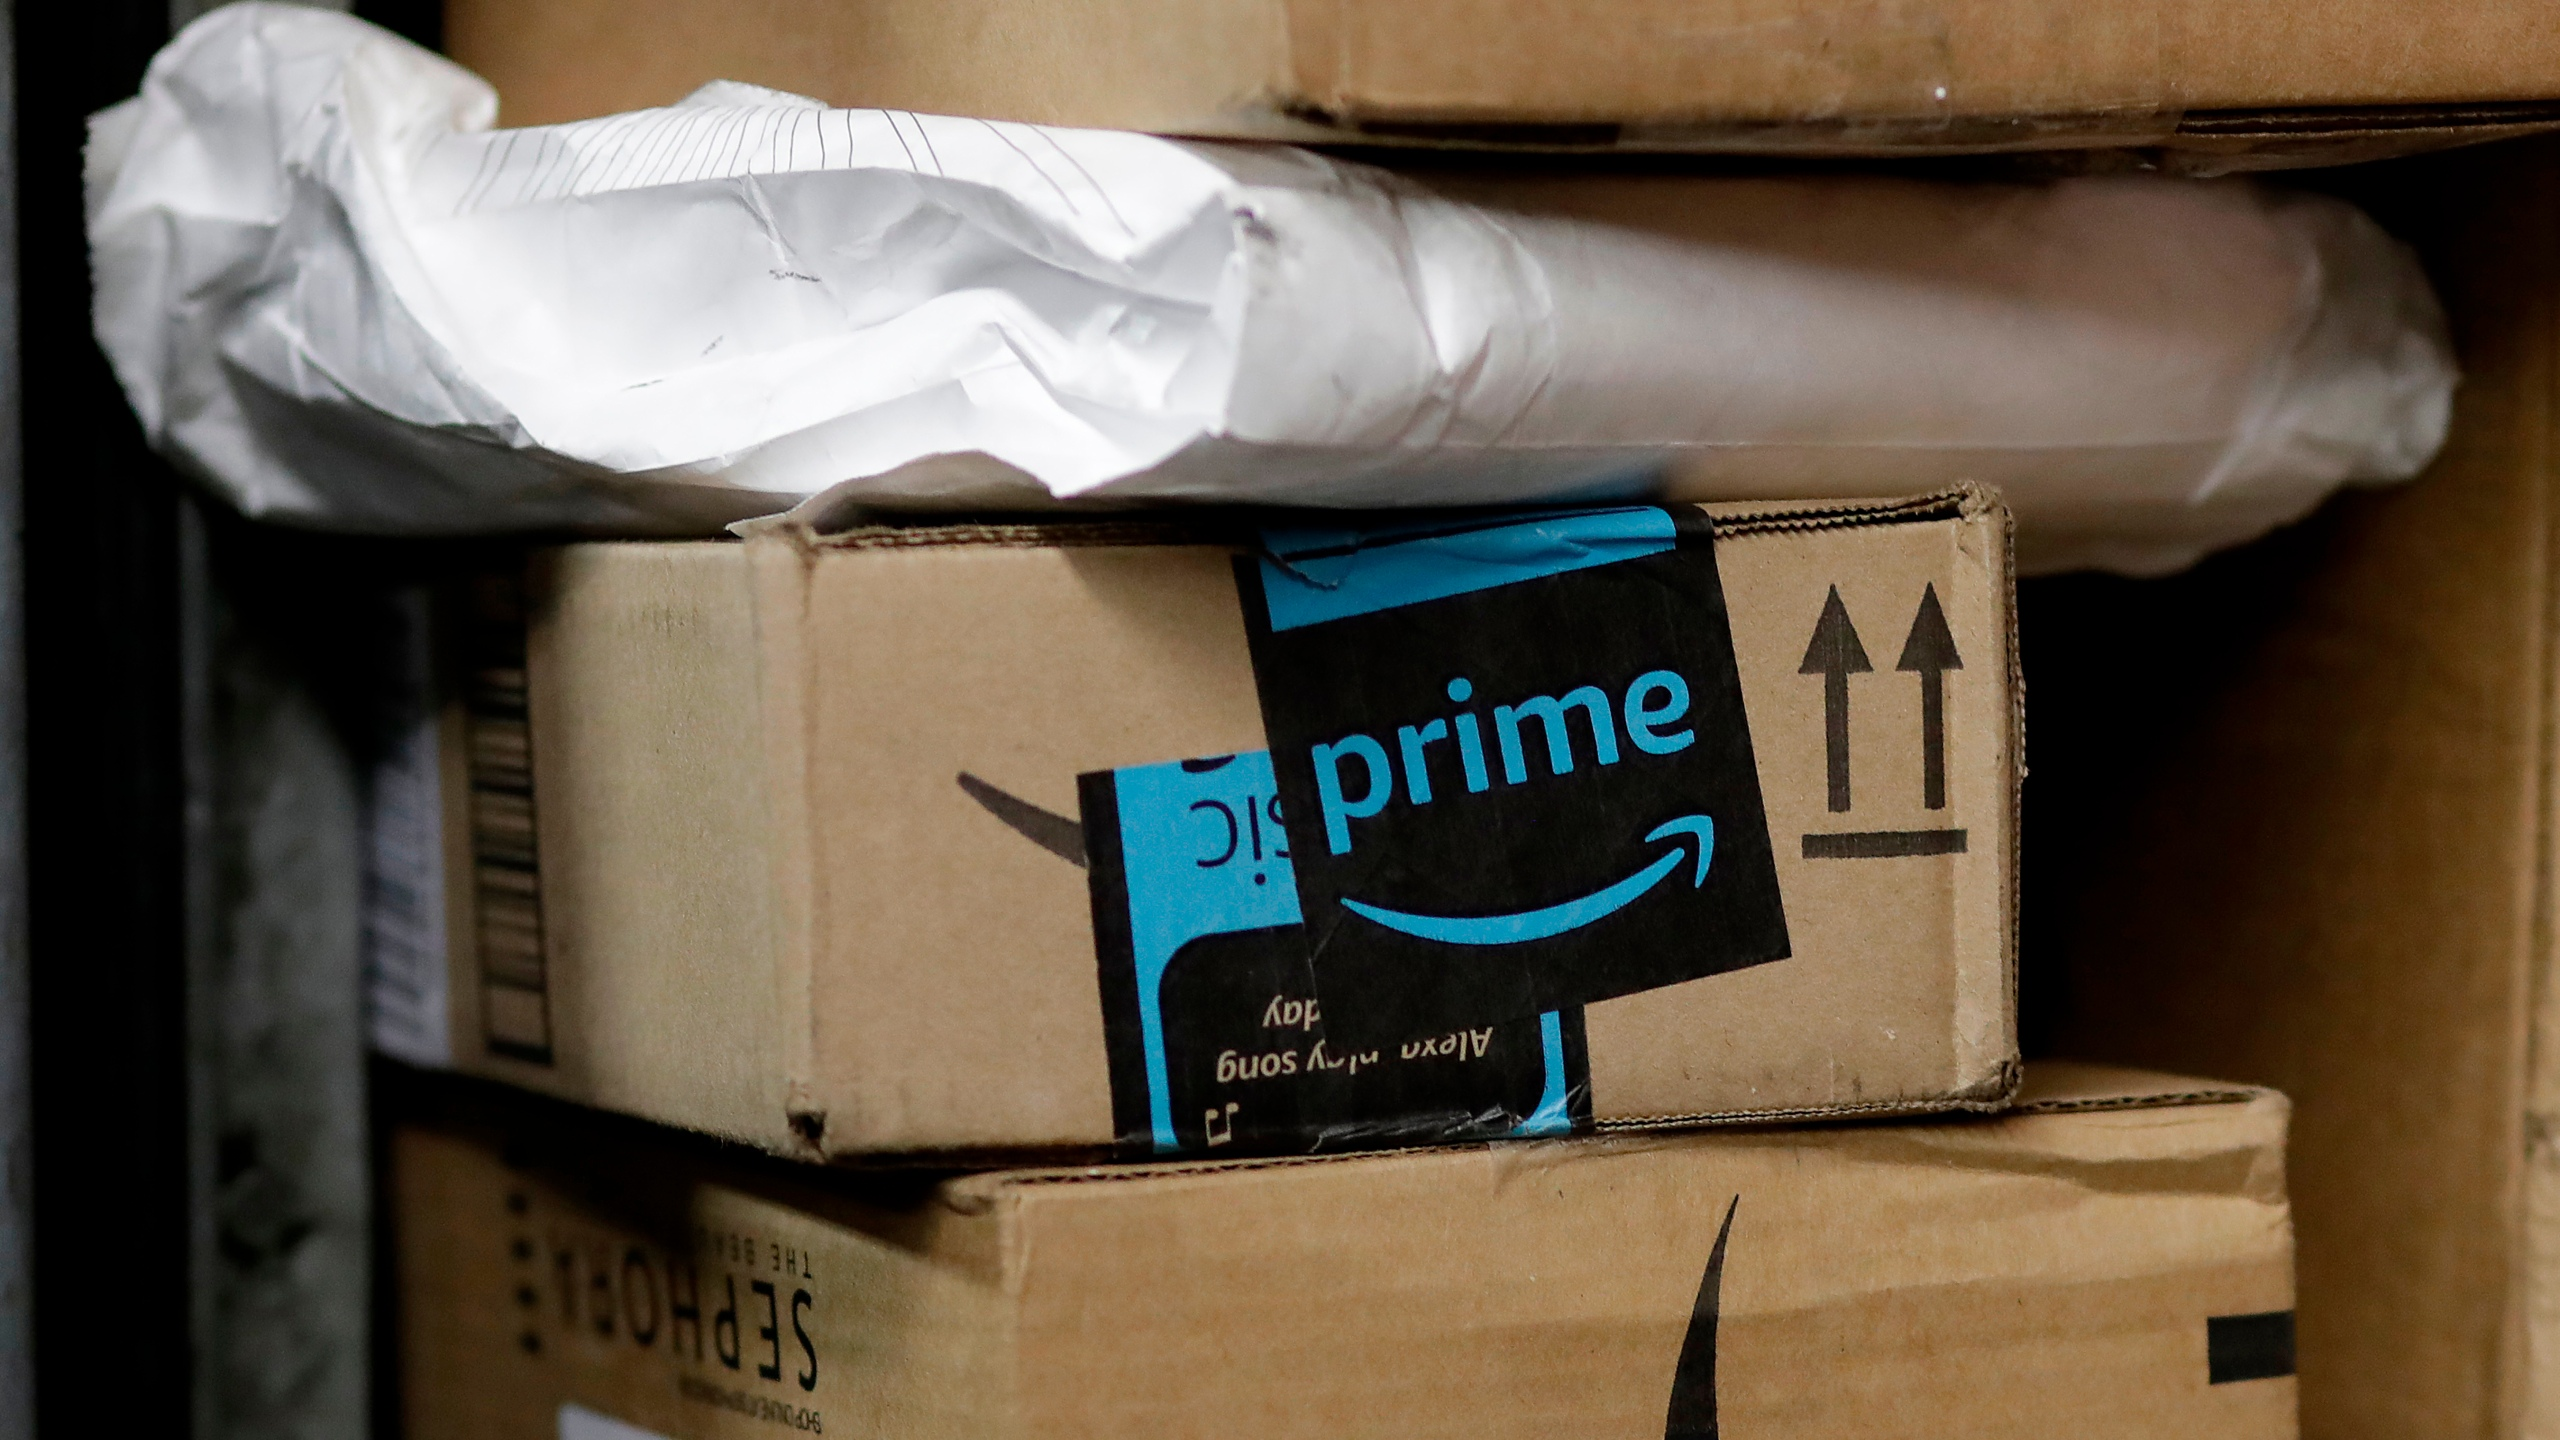 Amazon_Car_Delivery_33706-159532.jpg16768249